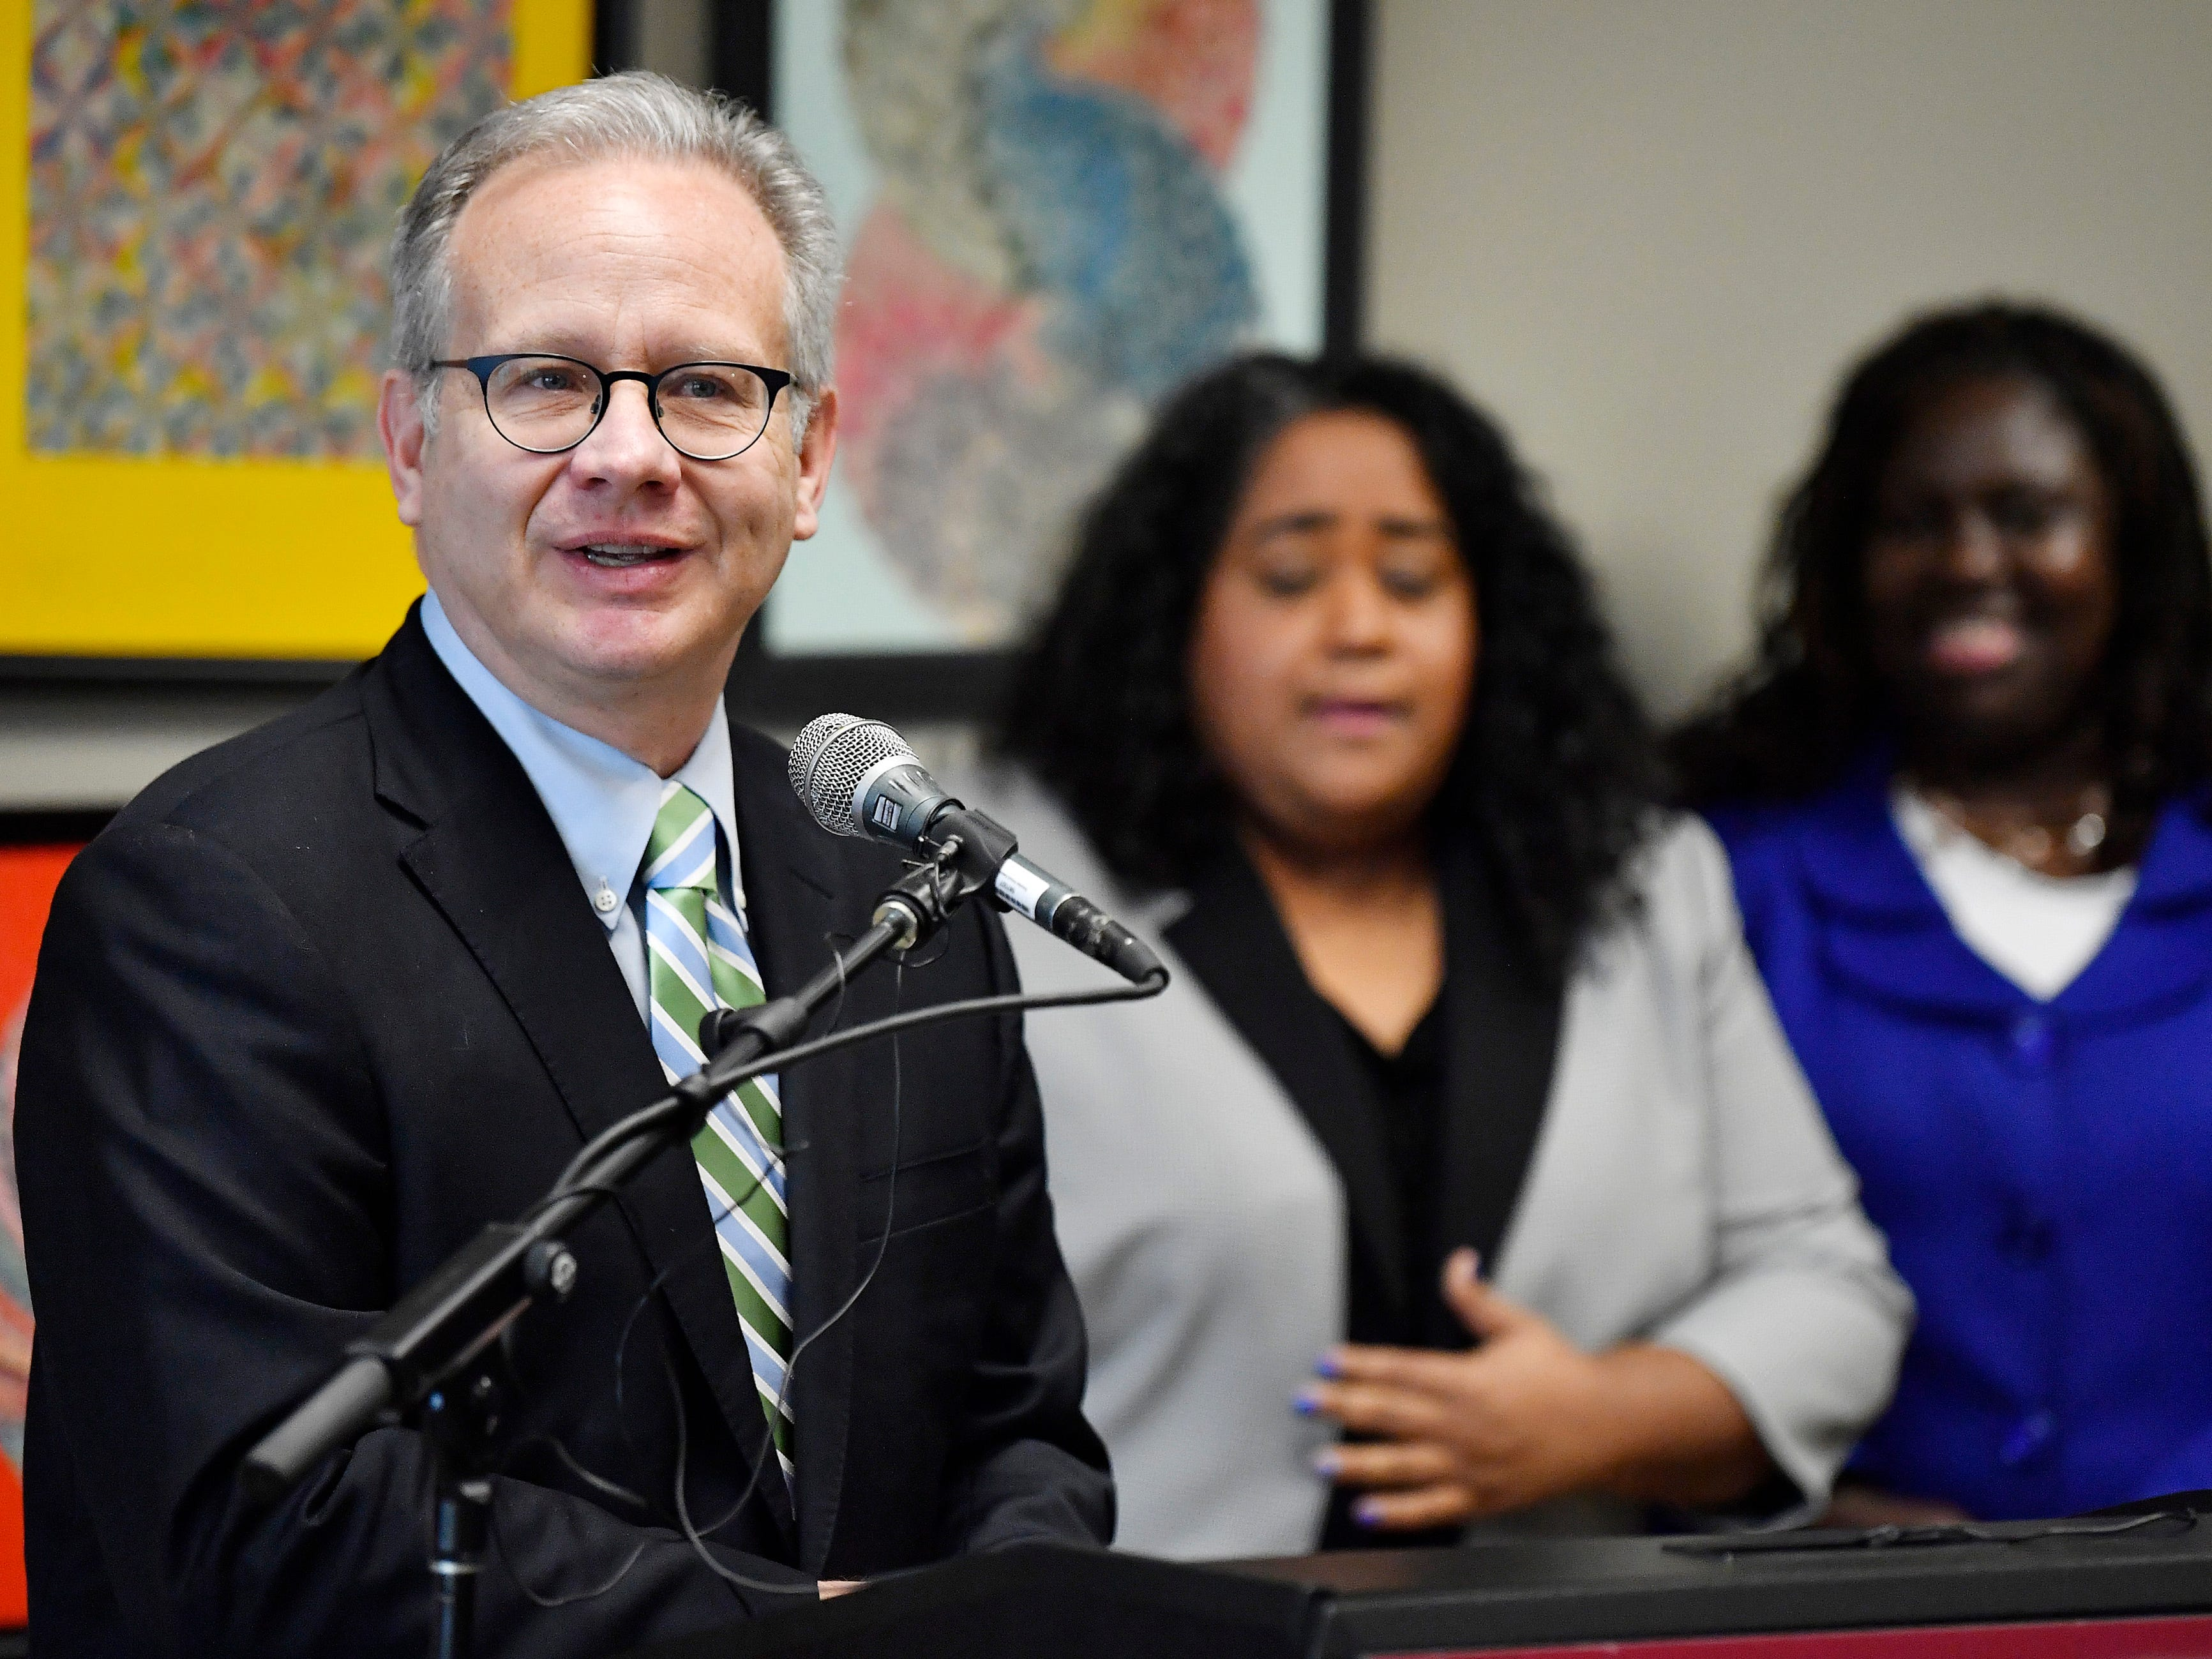 Nashville Mayor David Briley speaks at a press conference Monday, Jan. 7, 2019, in Nashville, Tenn., after Gov. Bill Haslam granted full clemency to Cyntoia Brown, and set an Aug. 7 release date for her from prison.